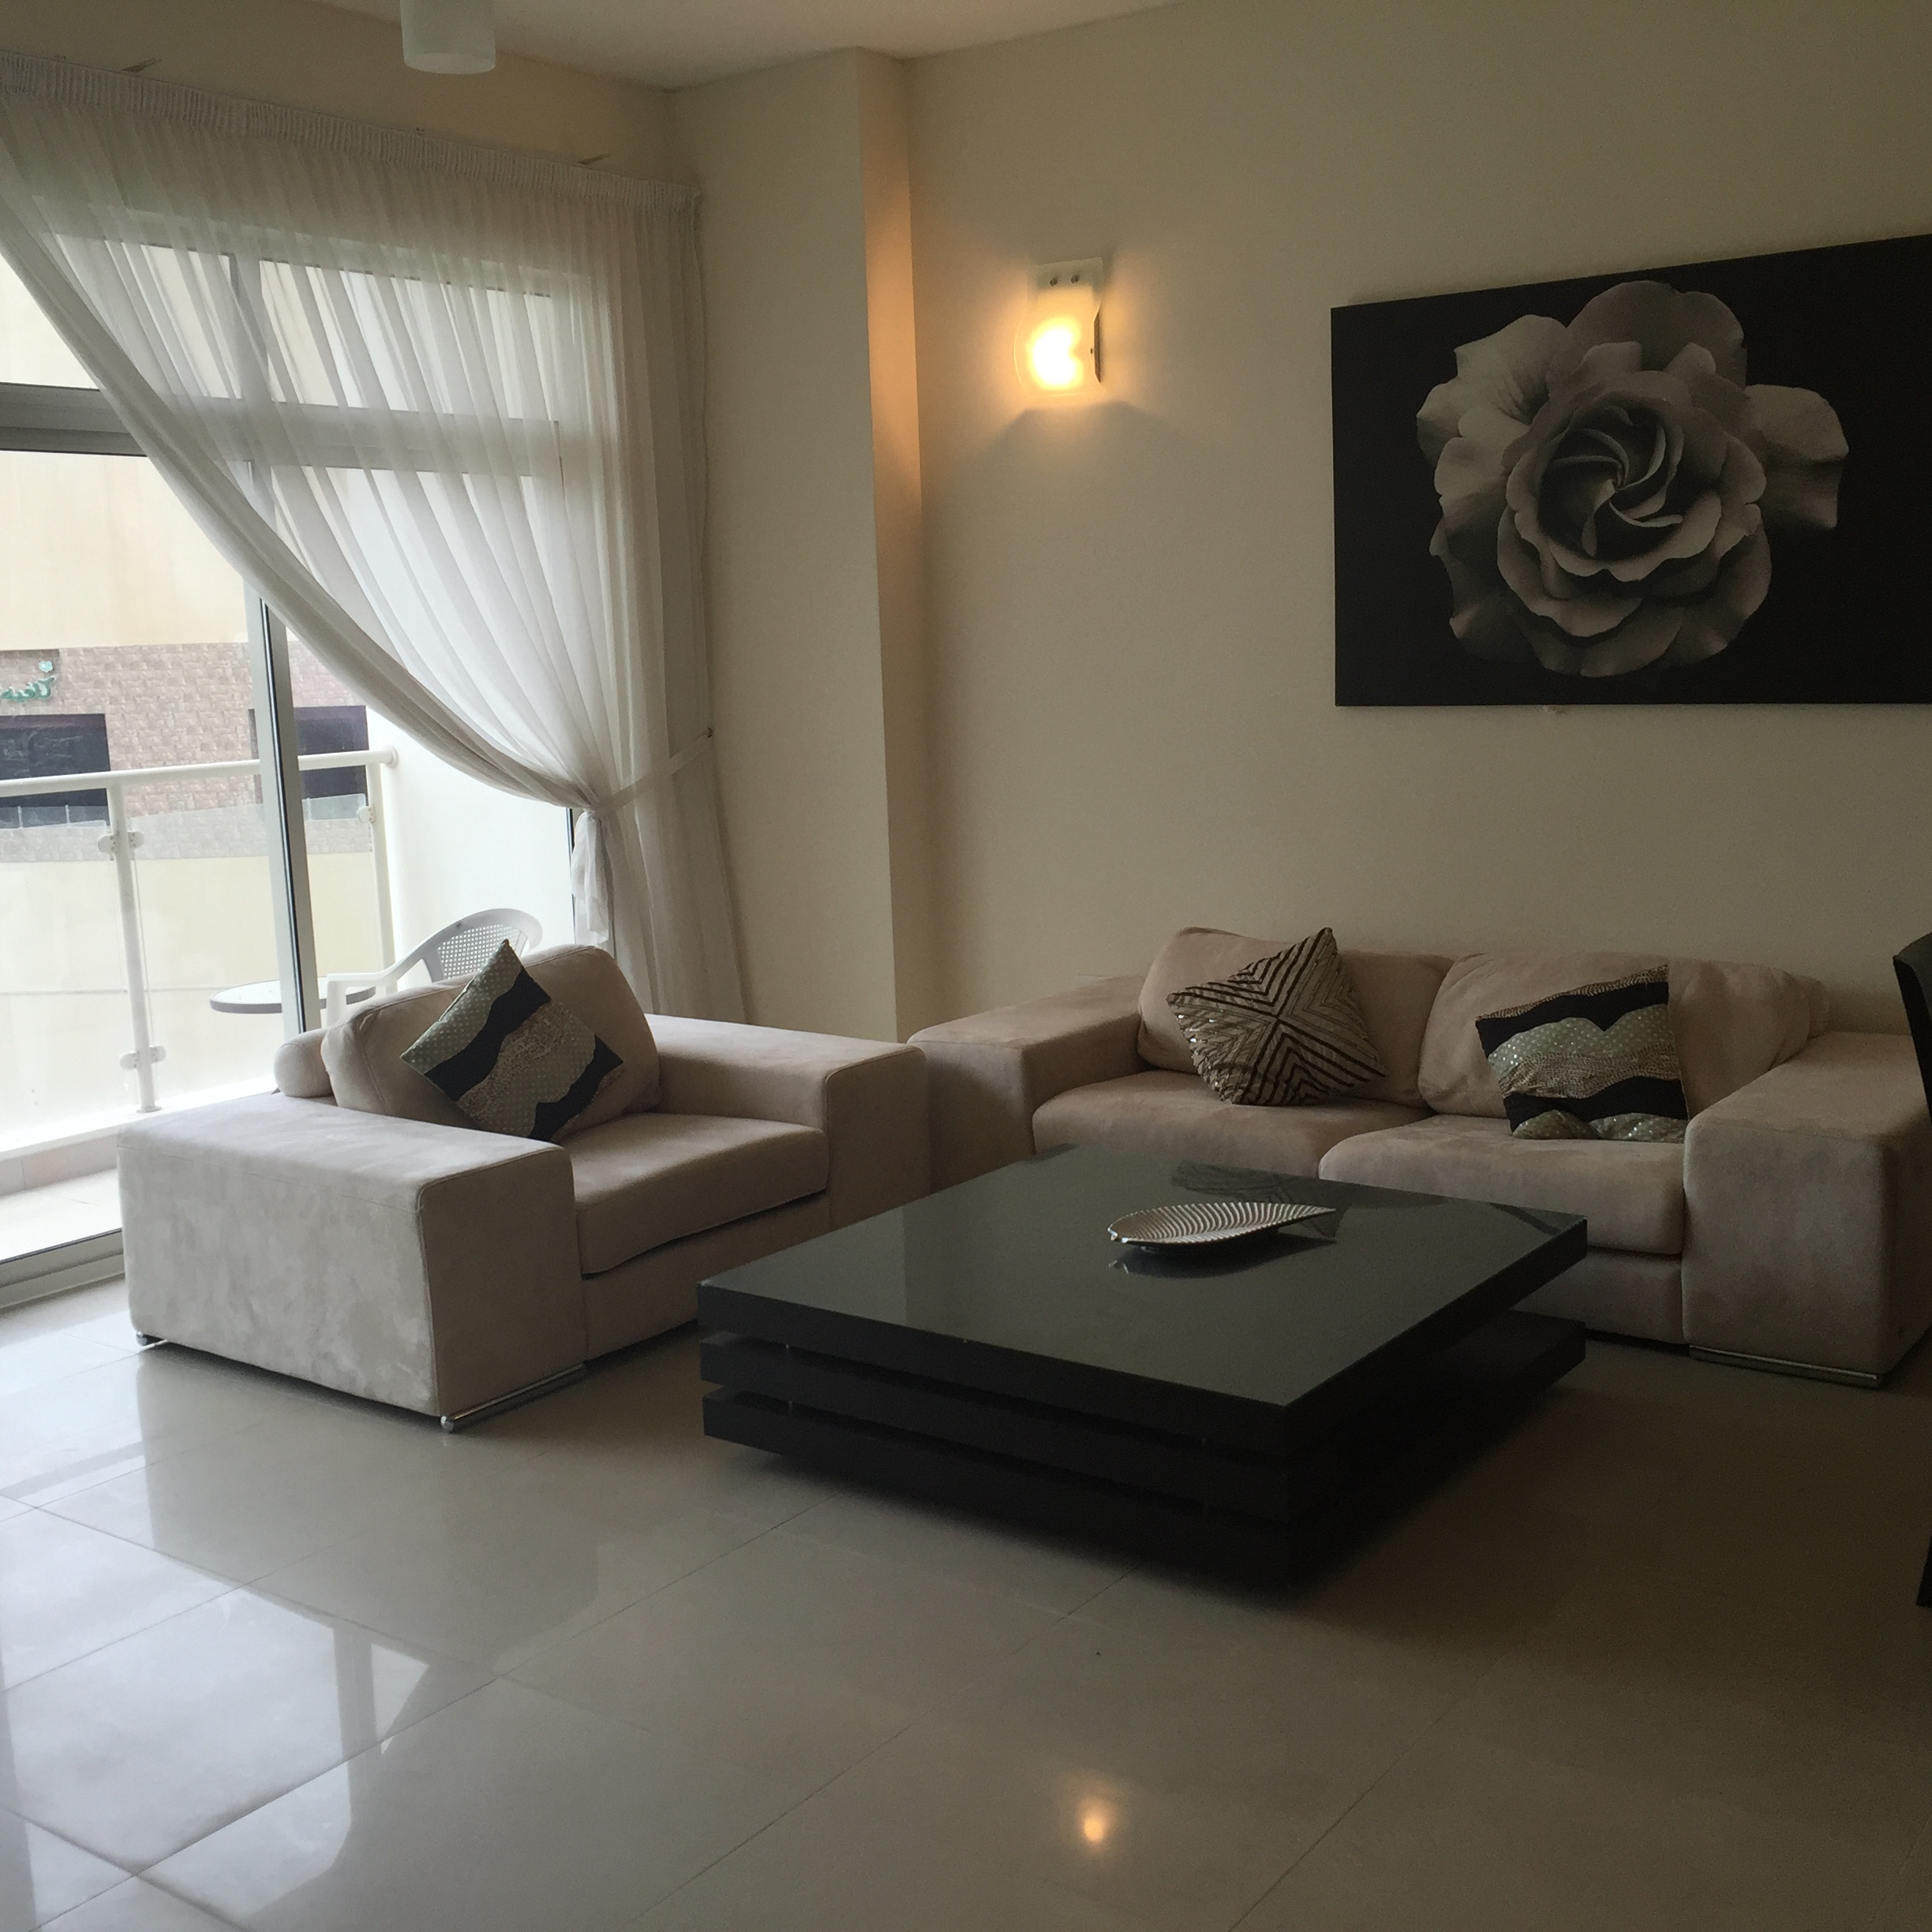 Apartmentrent: Modern Beautiful Fully Furnished 2 Bedroom Apartment- Rent Apartment Bahrain Hera Real Estate